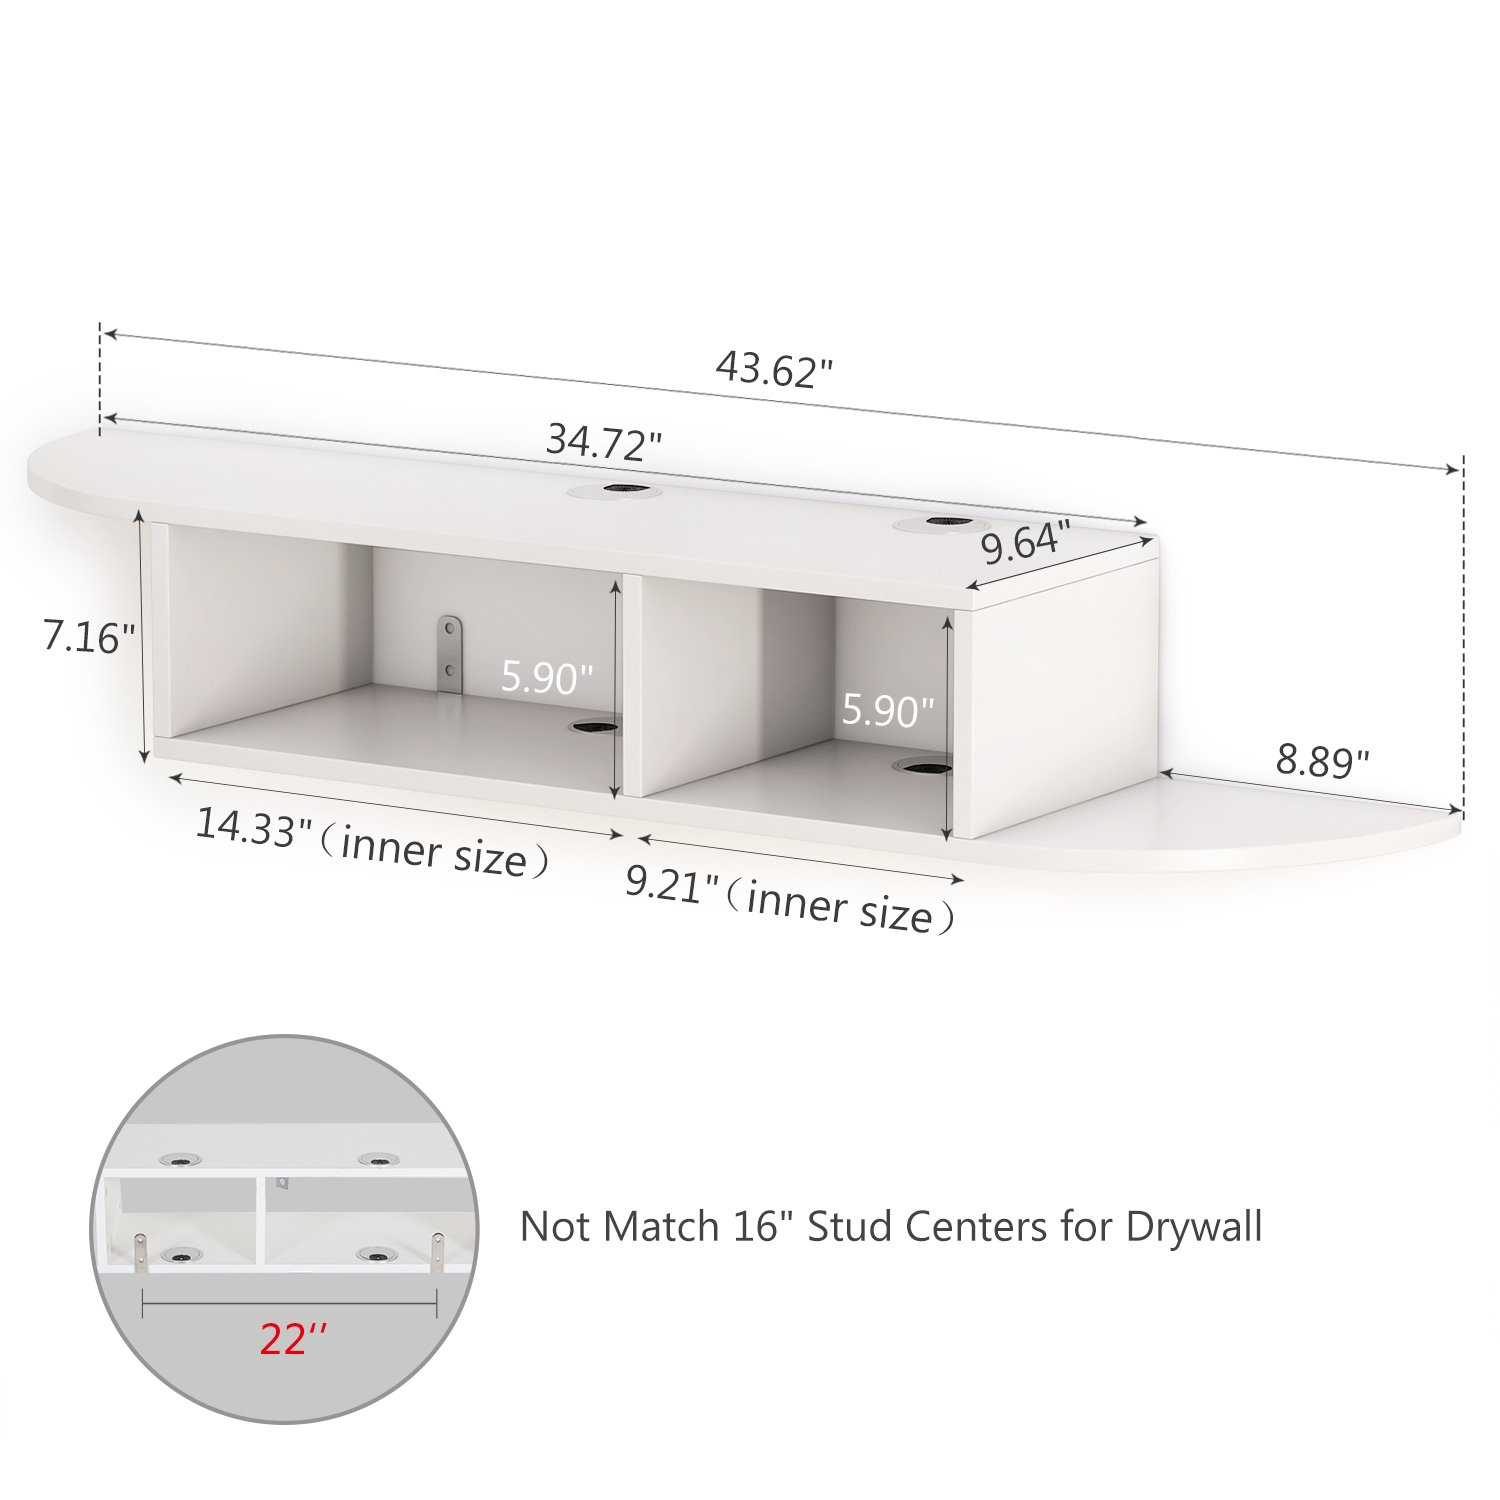 Tribesigns 2 Tier Modern Wall Mount Floating Shelf TV Console 43.3x9.4x7 inches for Cable Boxes//Routers//Remotes//DVD Players//Game Consoles White